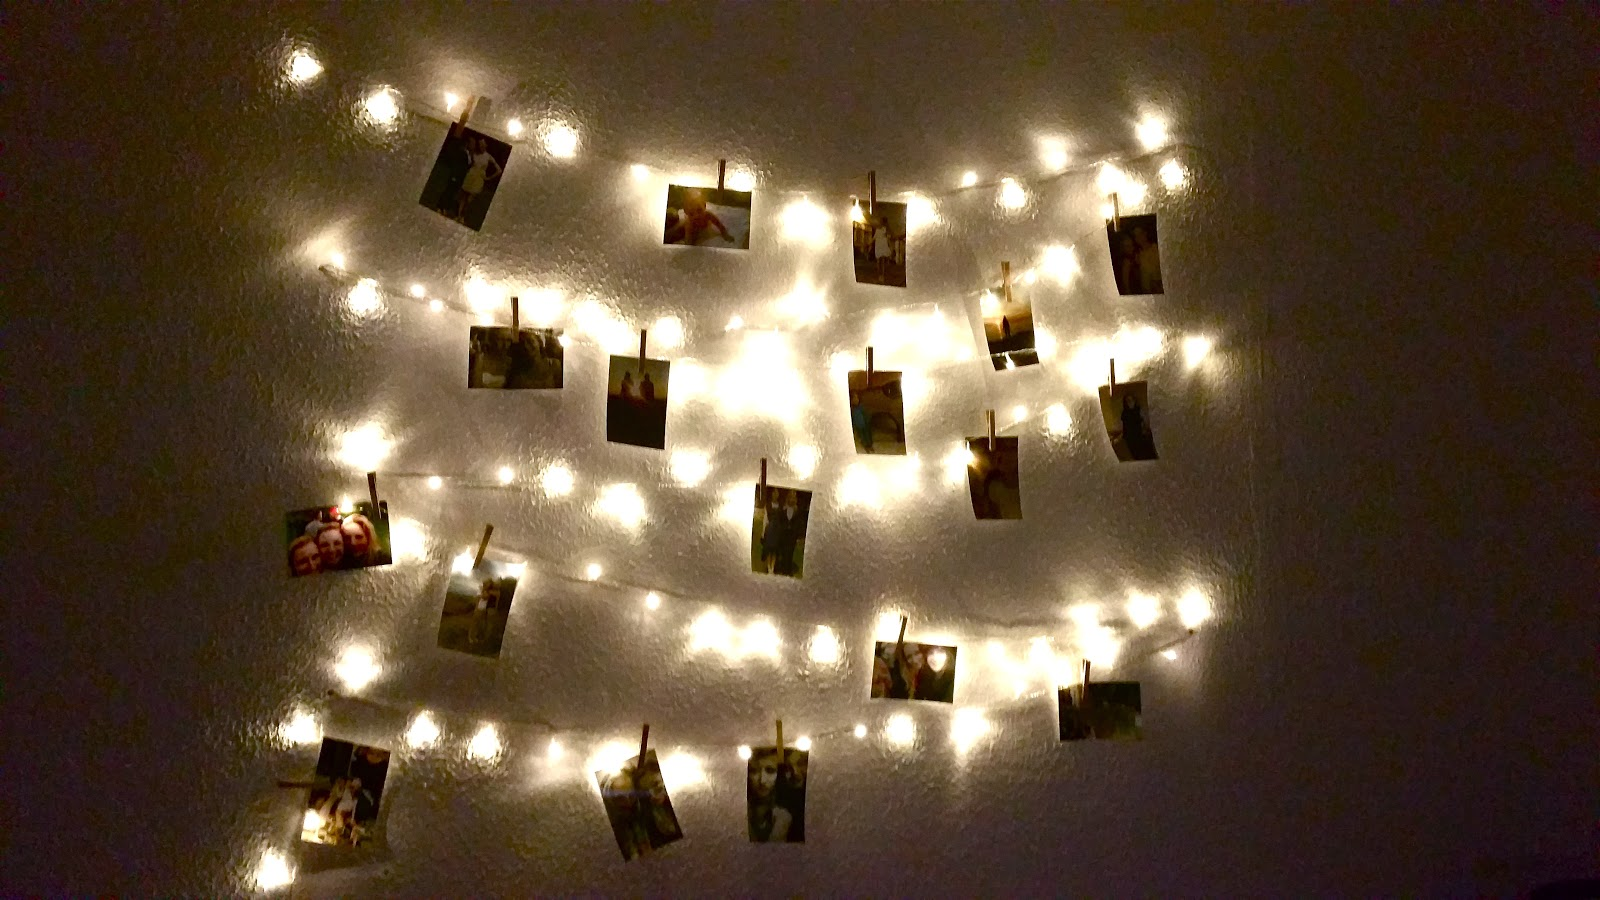 Lichterkette Wand Homemade With Love: Fotolichterkette